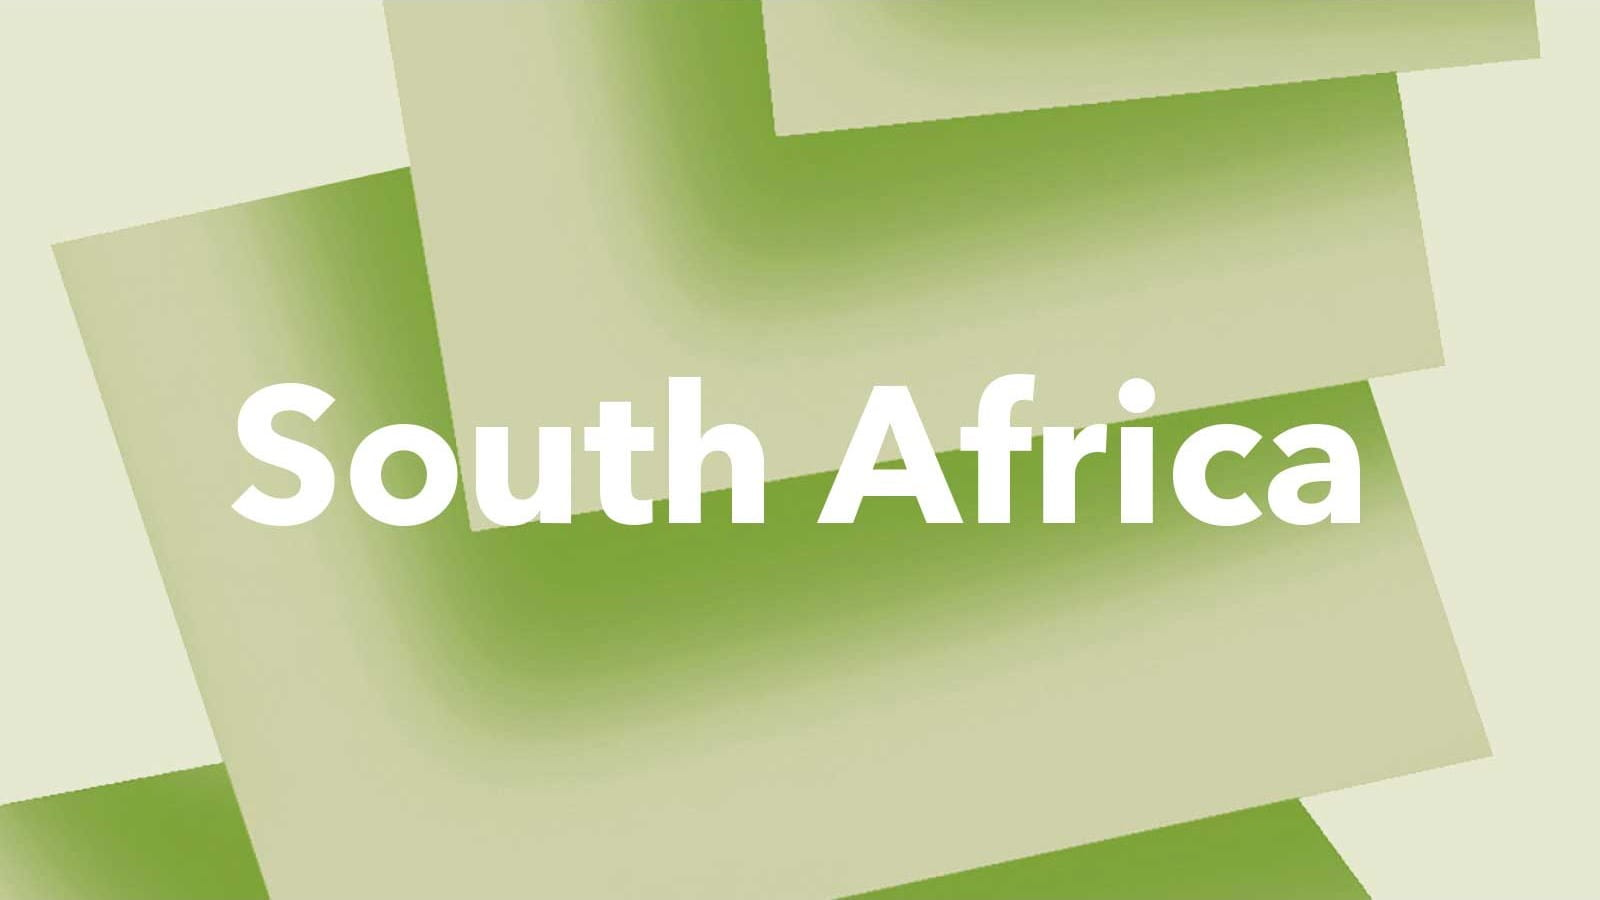 The words 'South Africa' on a green background